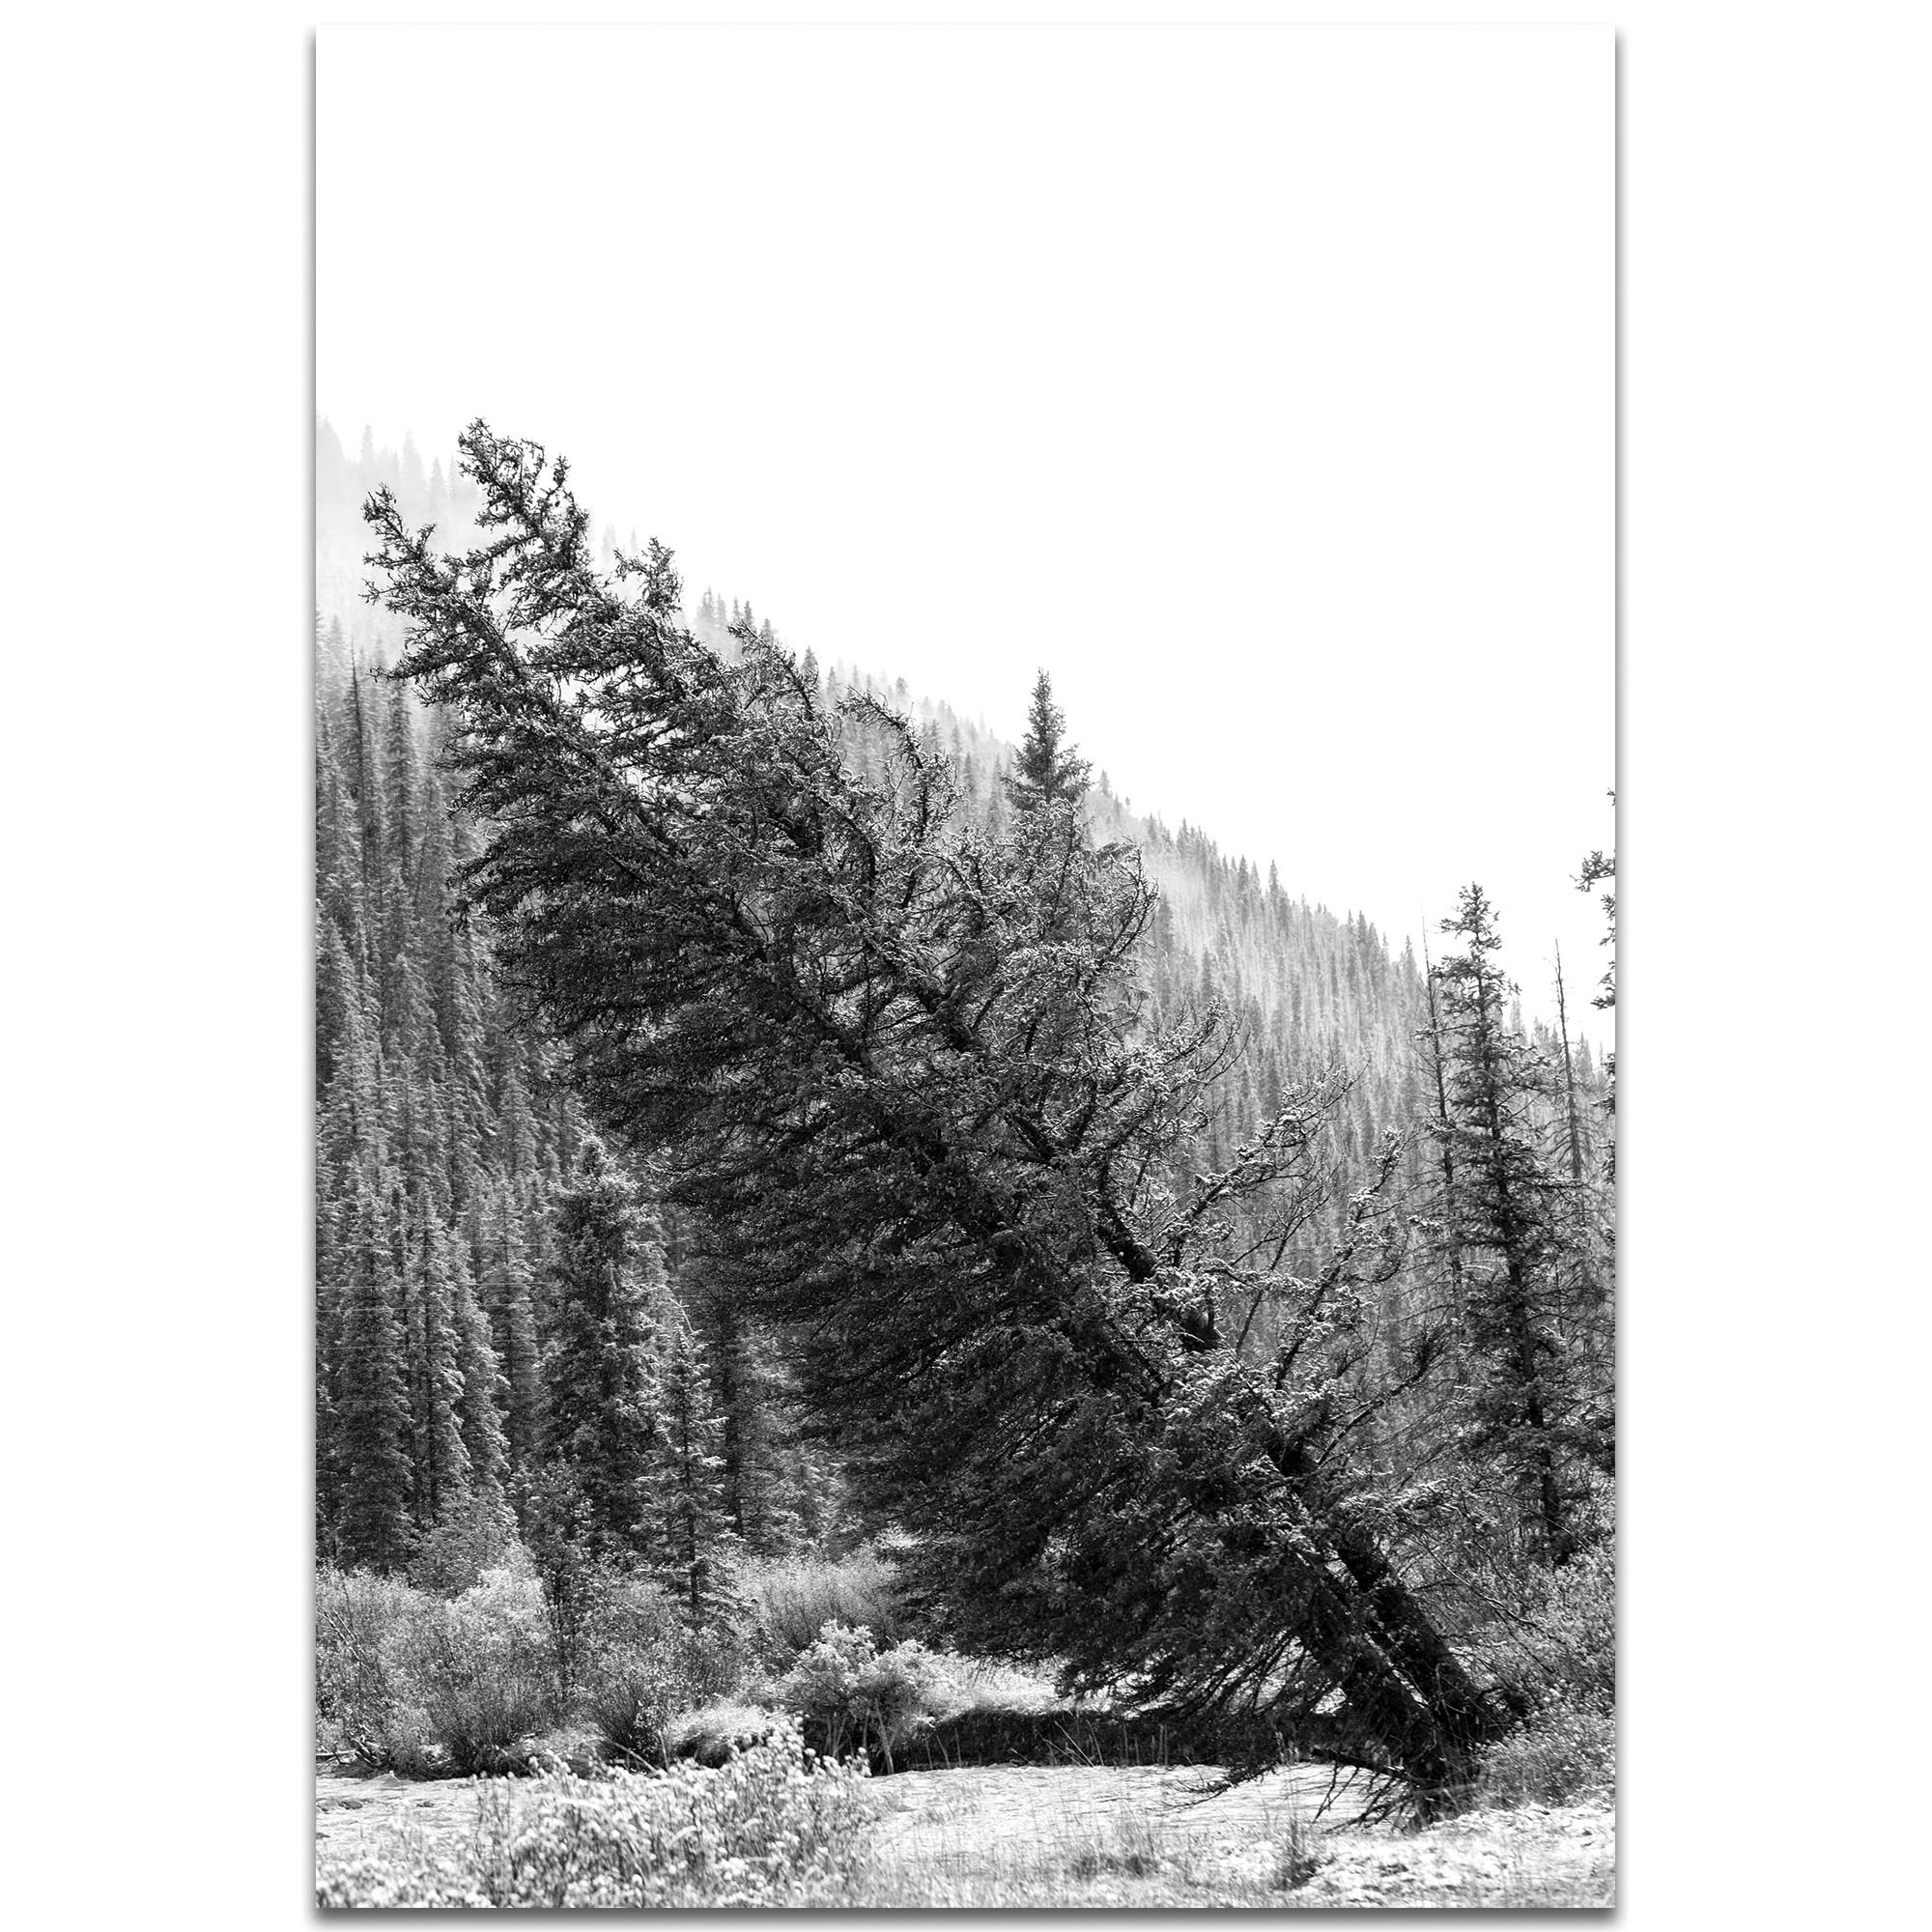 Black & White Photography 'Tilted Pines' - Winter Trees Art on Metal or Plexiglass